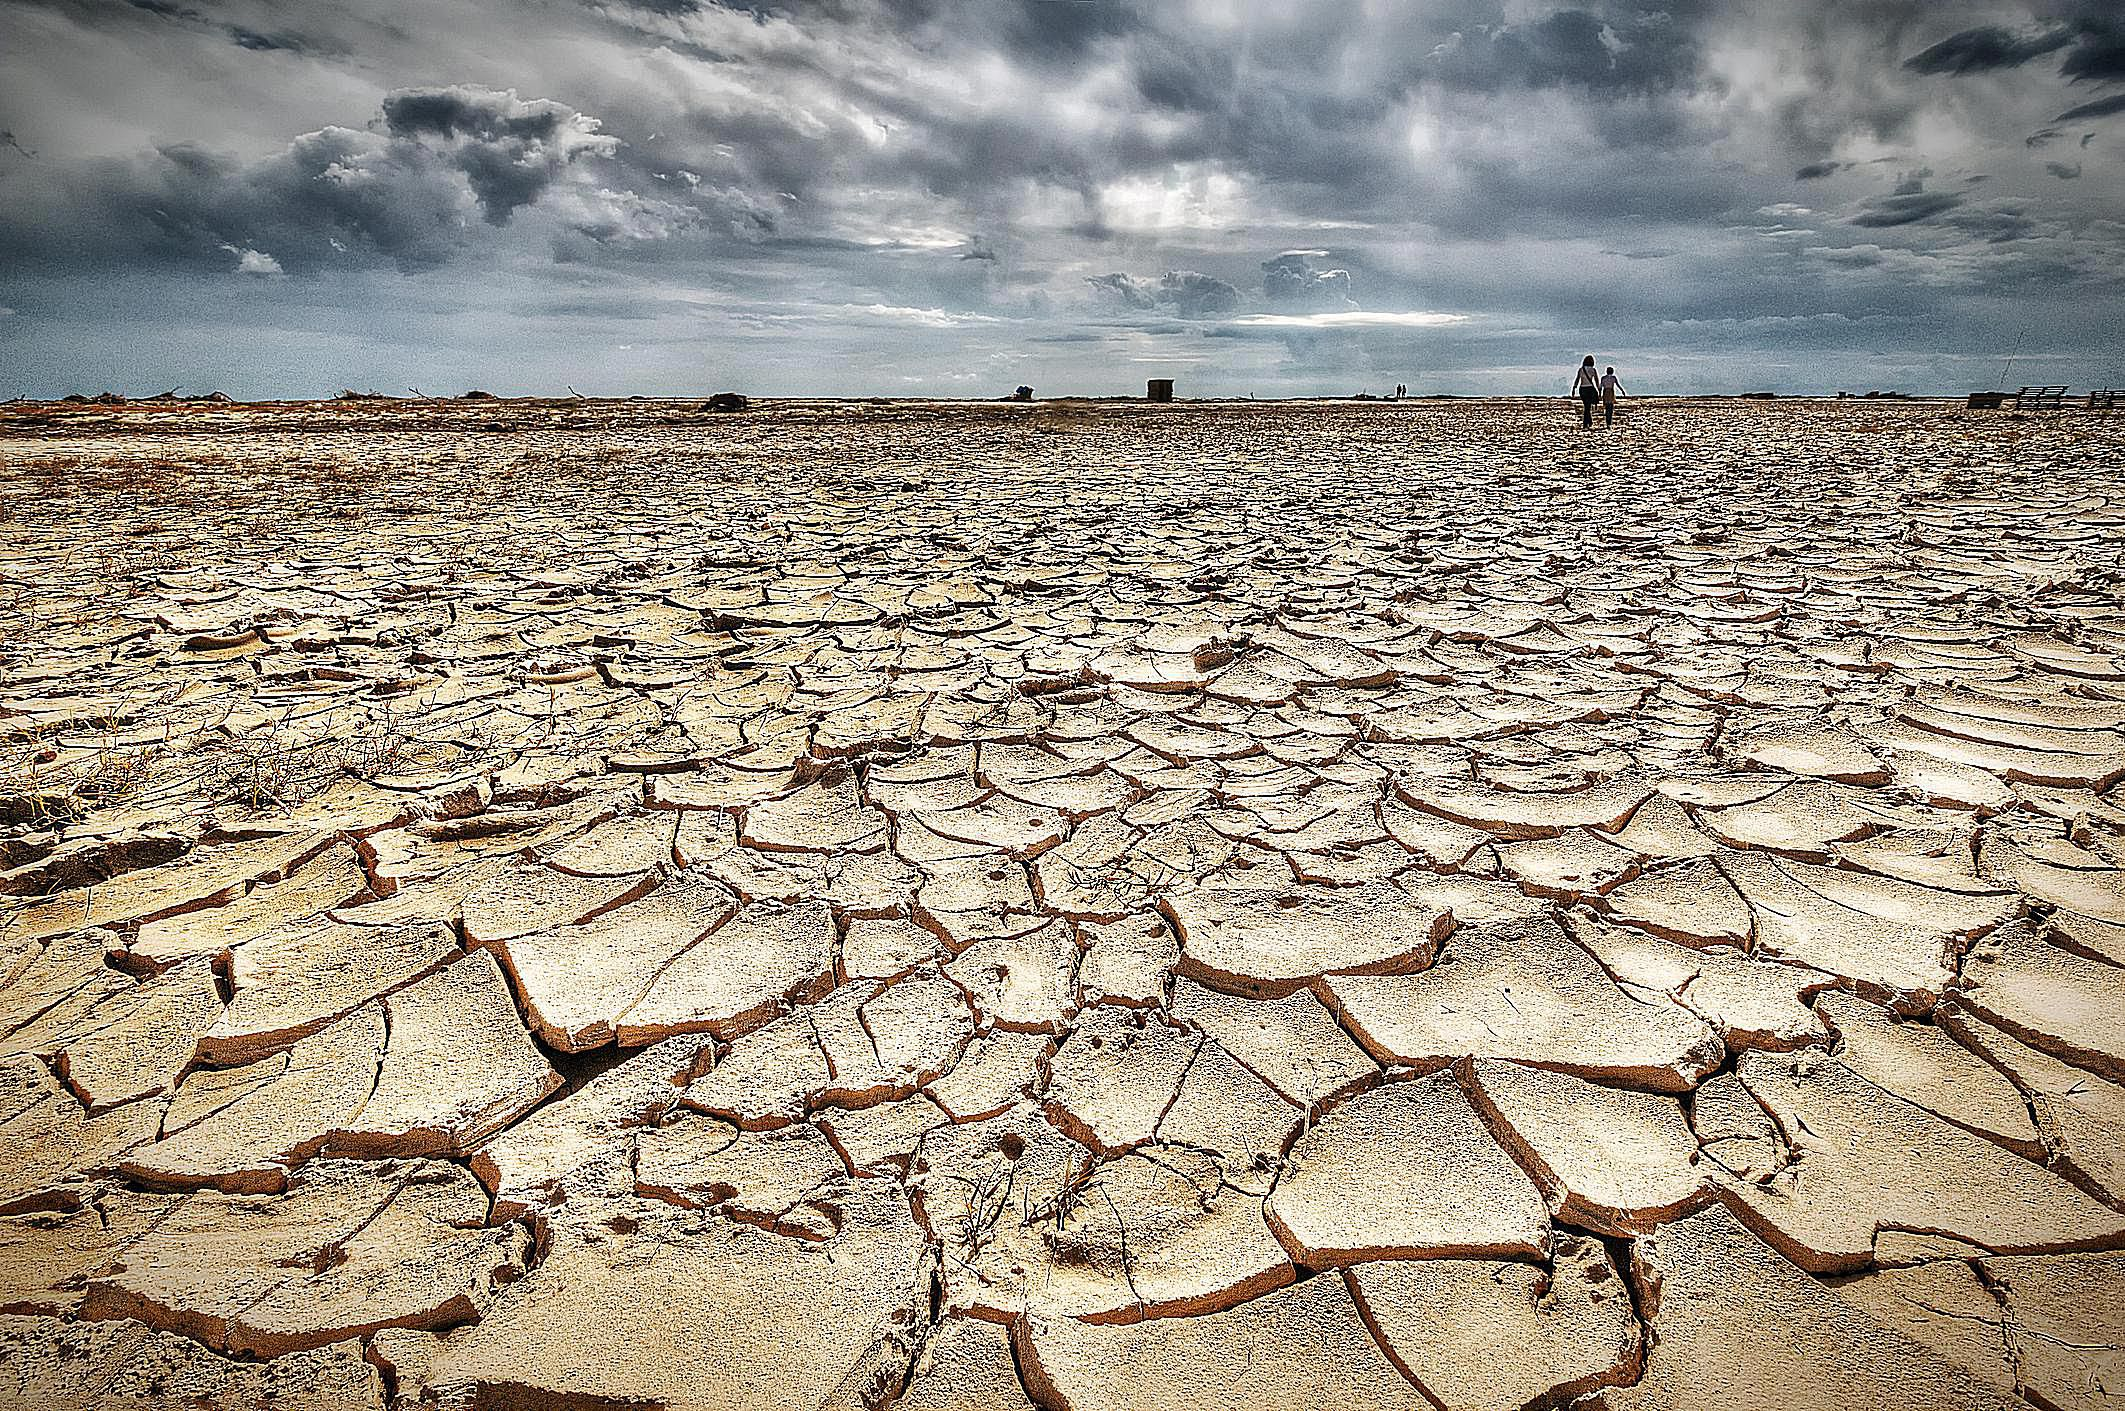 Drought - Causes and Stages